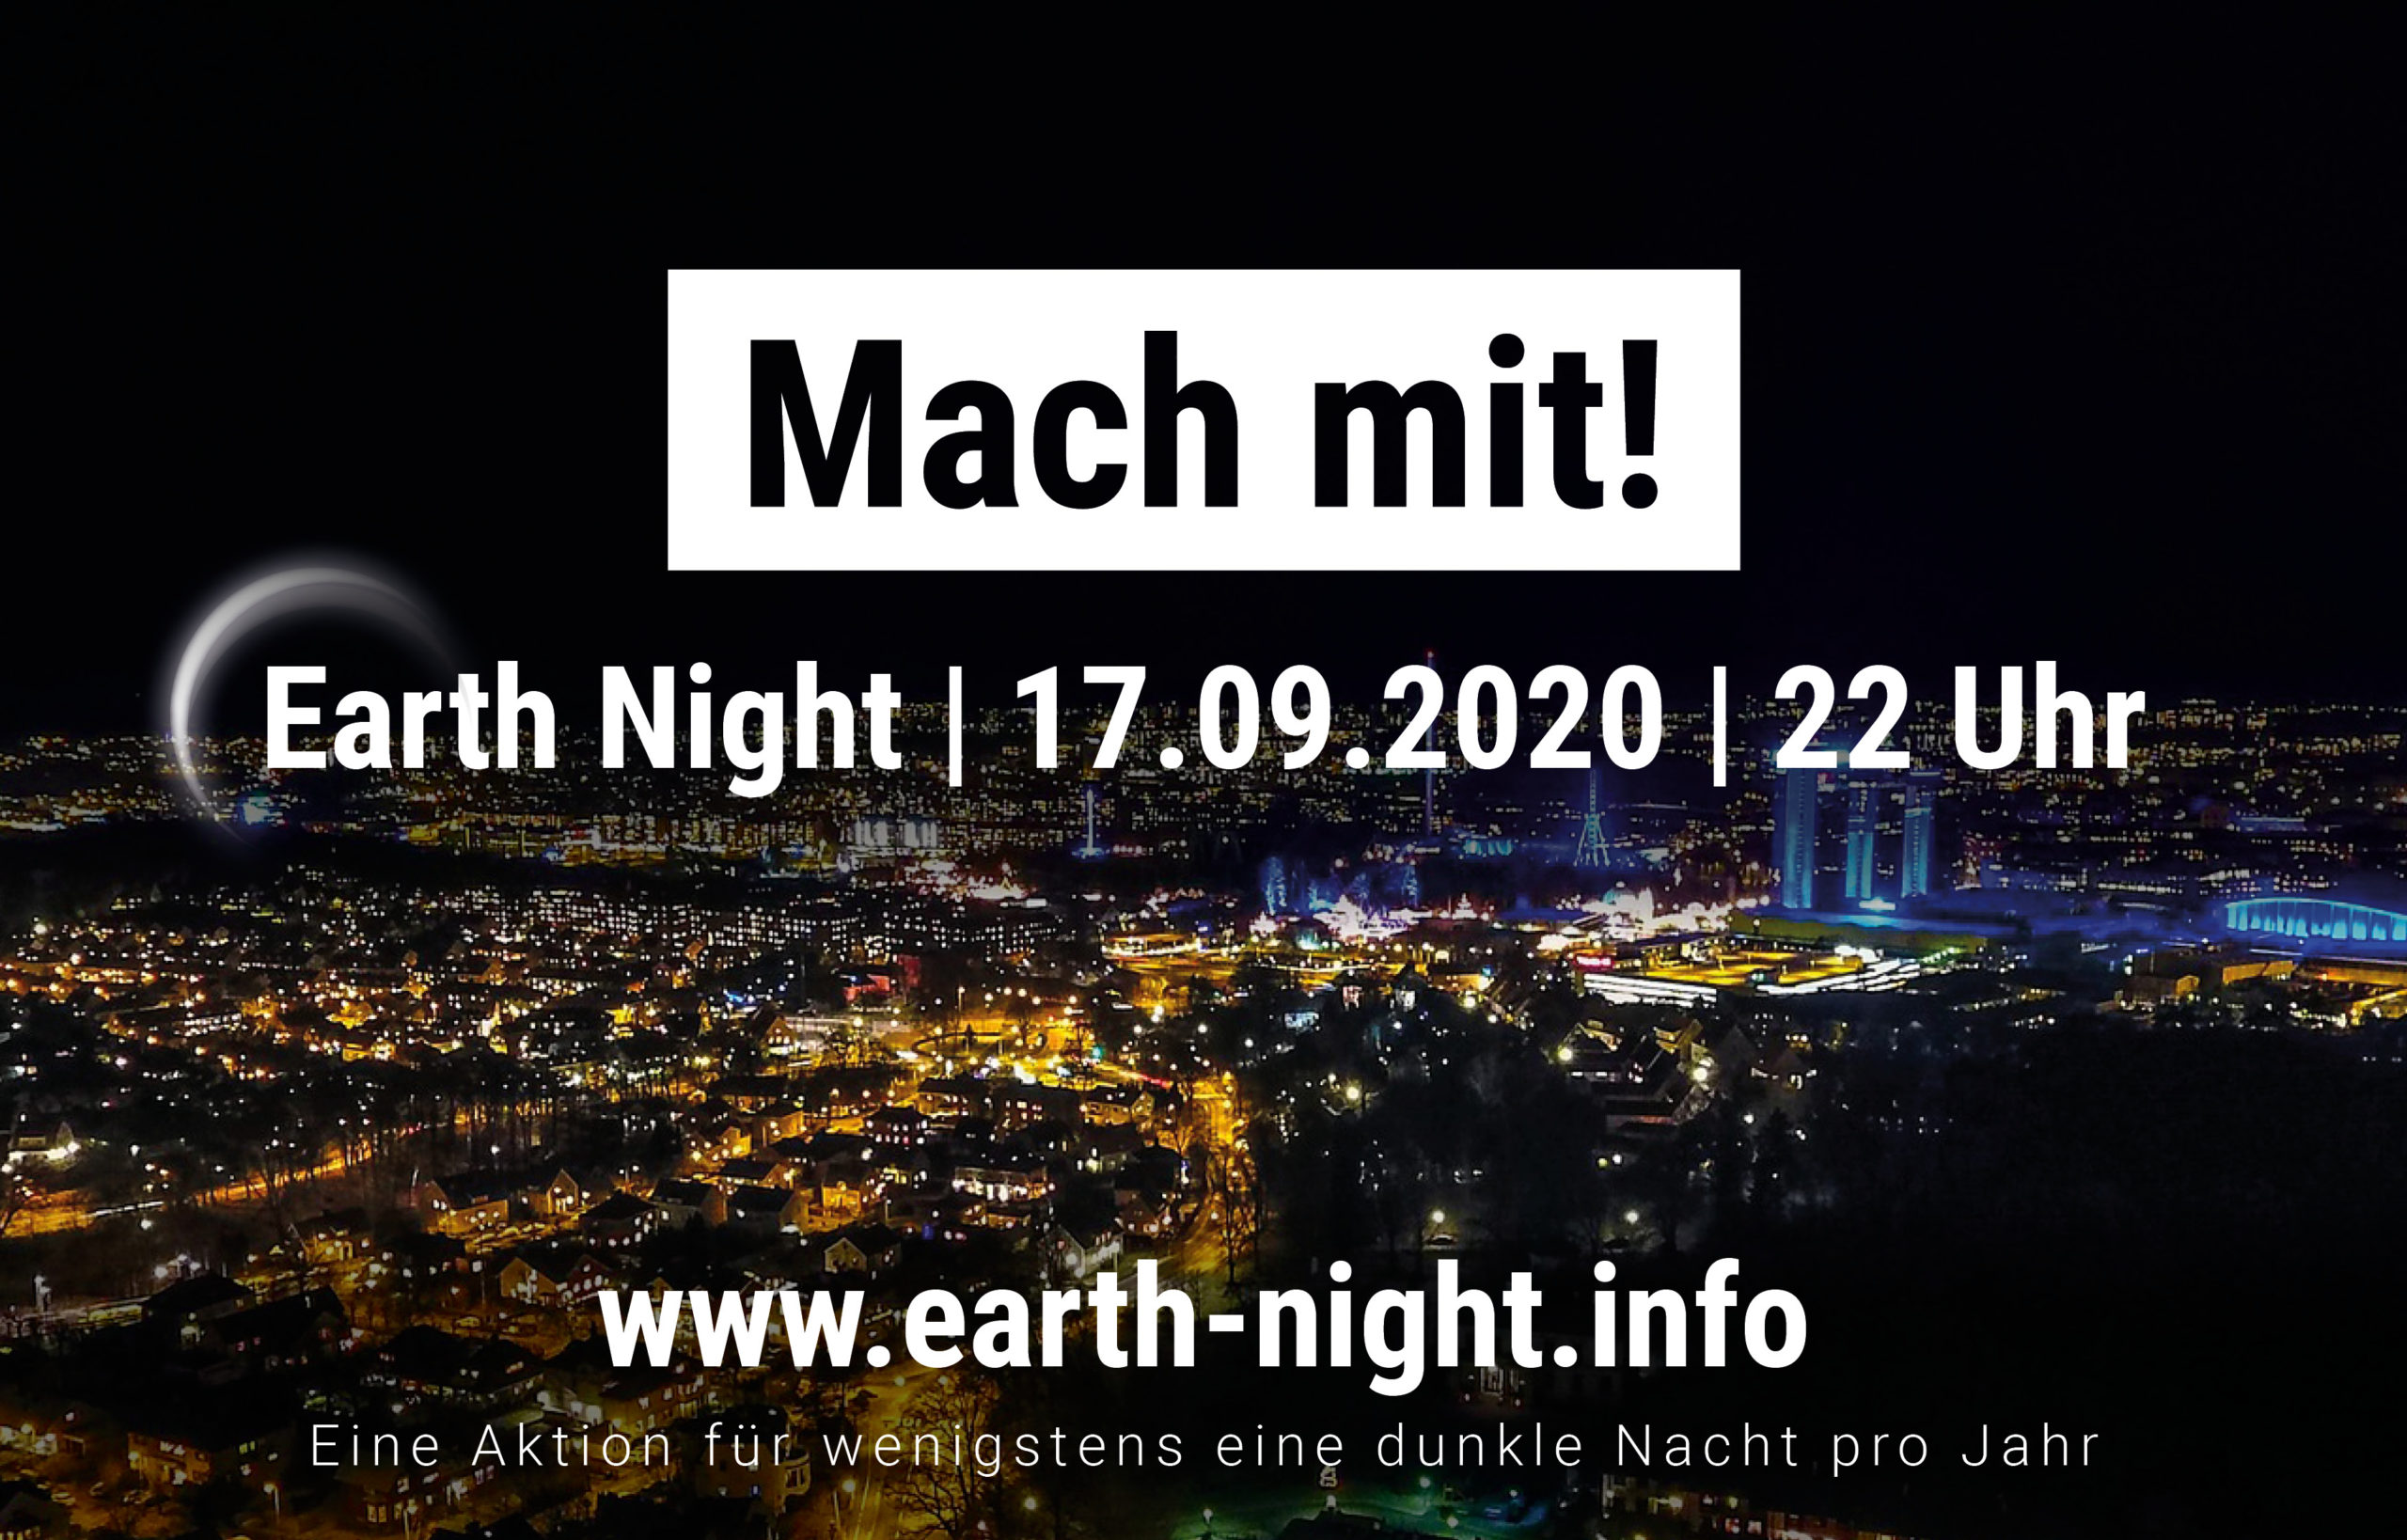 earth-night-2020-banner-01-scaled